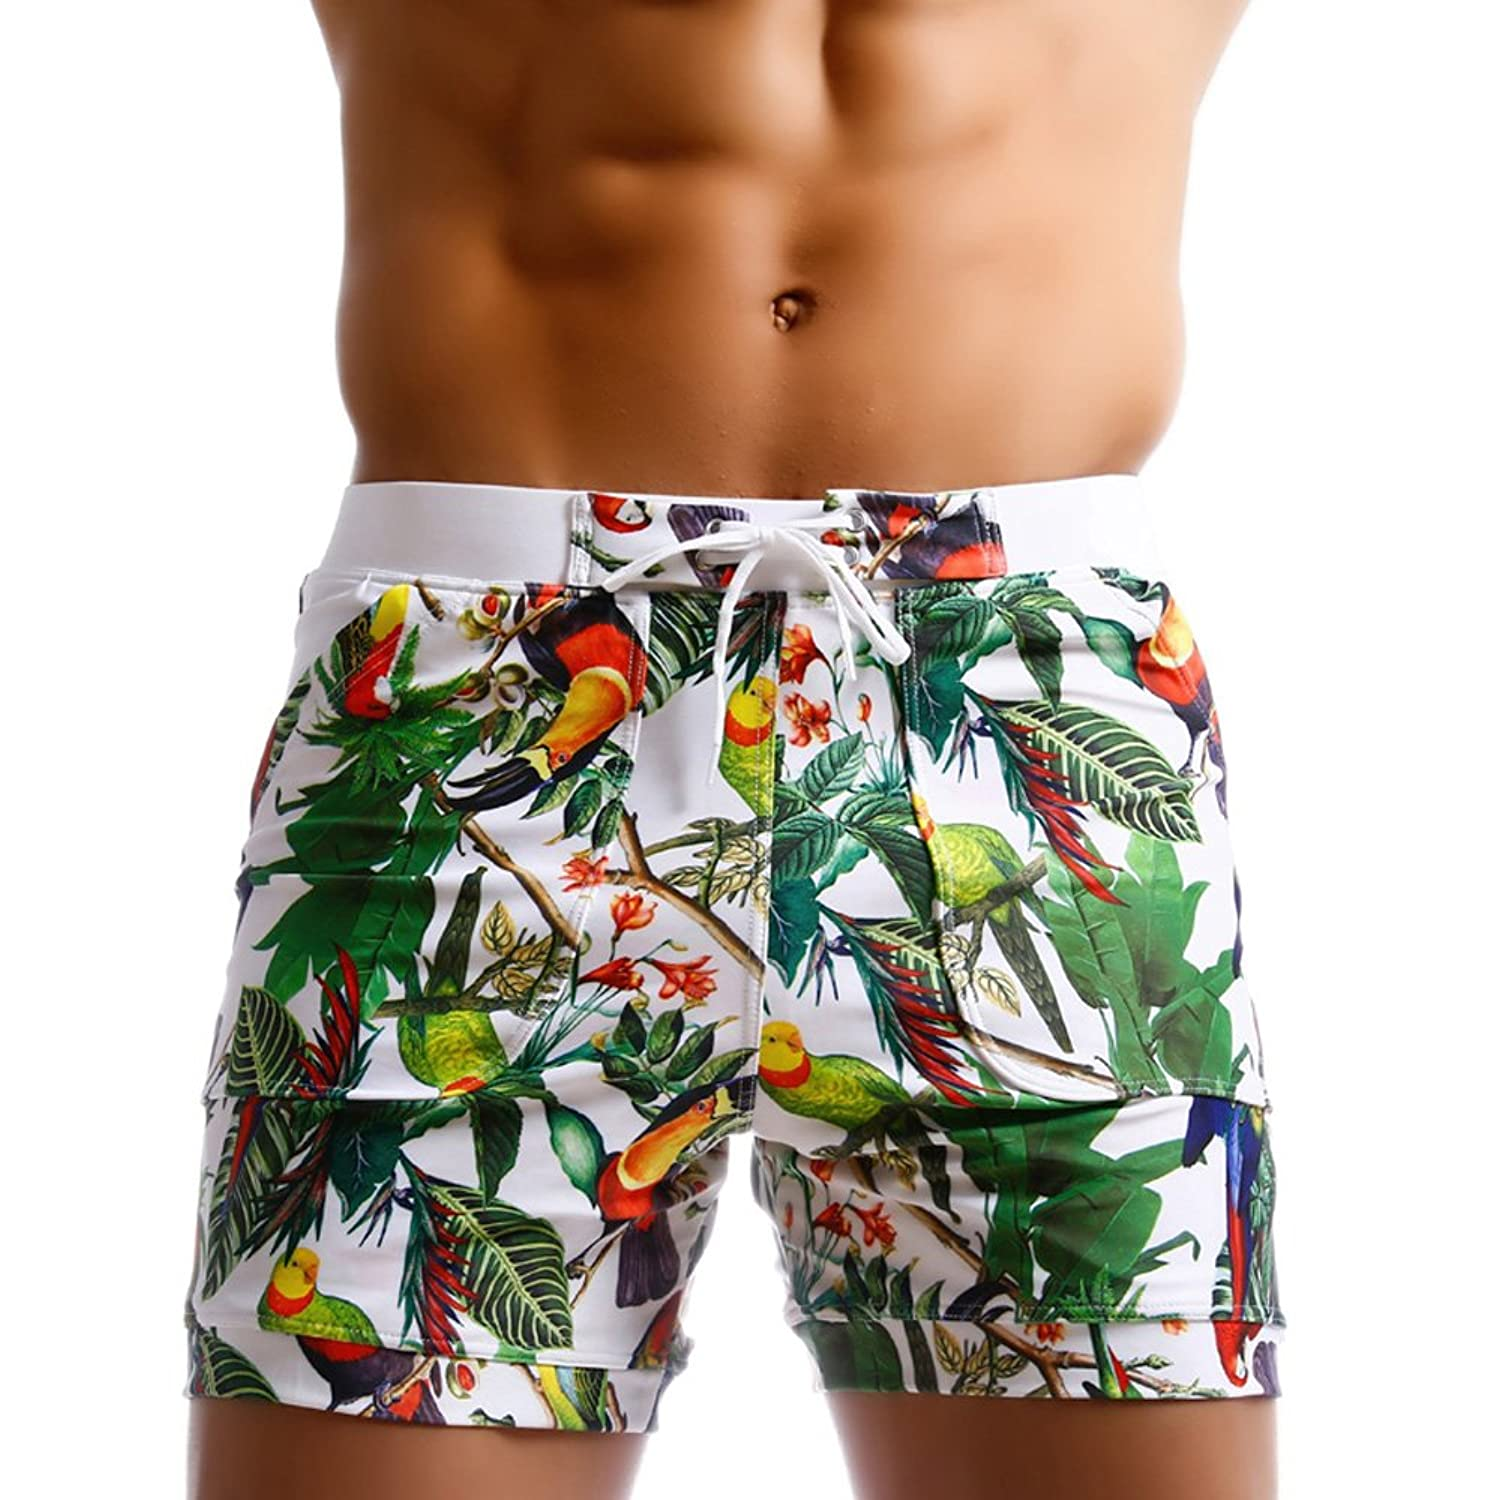 camouflage and flower print swim shorts - Green Nos Beachwear Sale Shop New Sale Online Free Shipping Pay With Paypal Official Site Buy Cheap Discount wtBPa